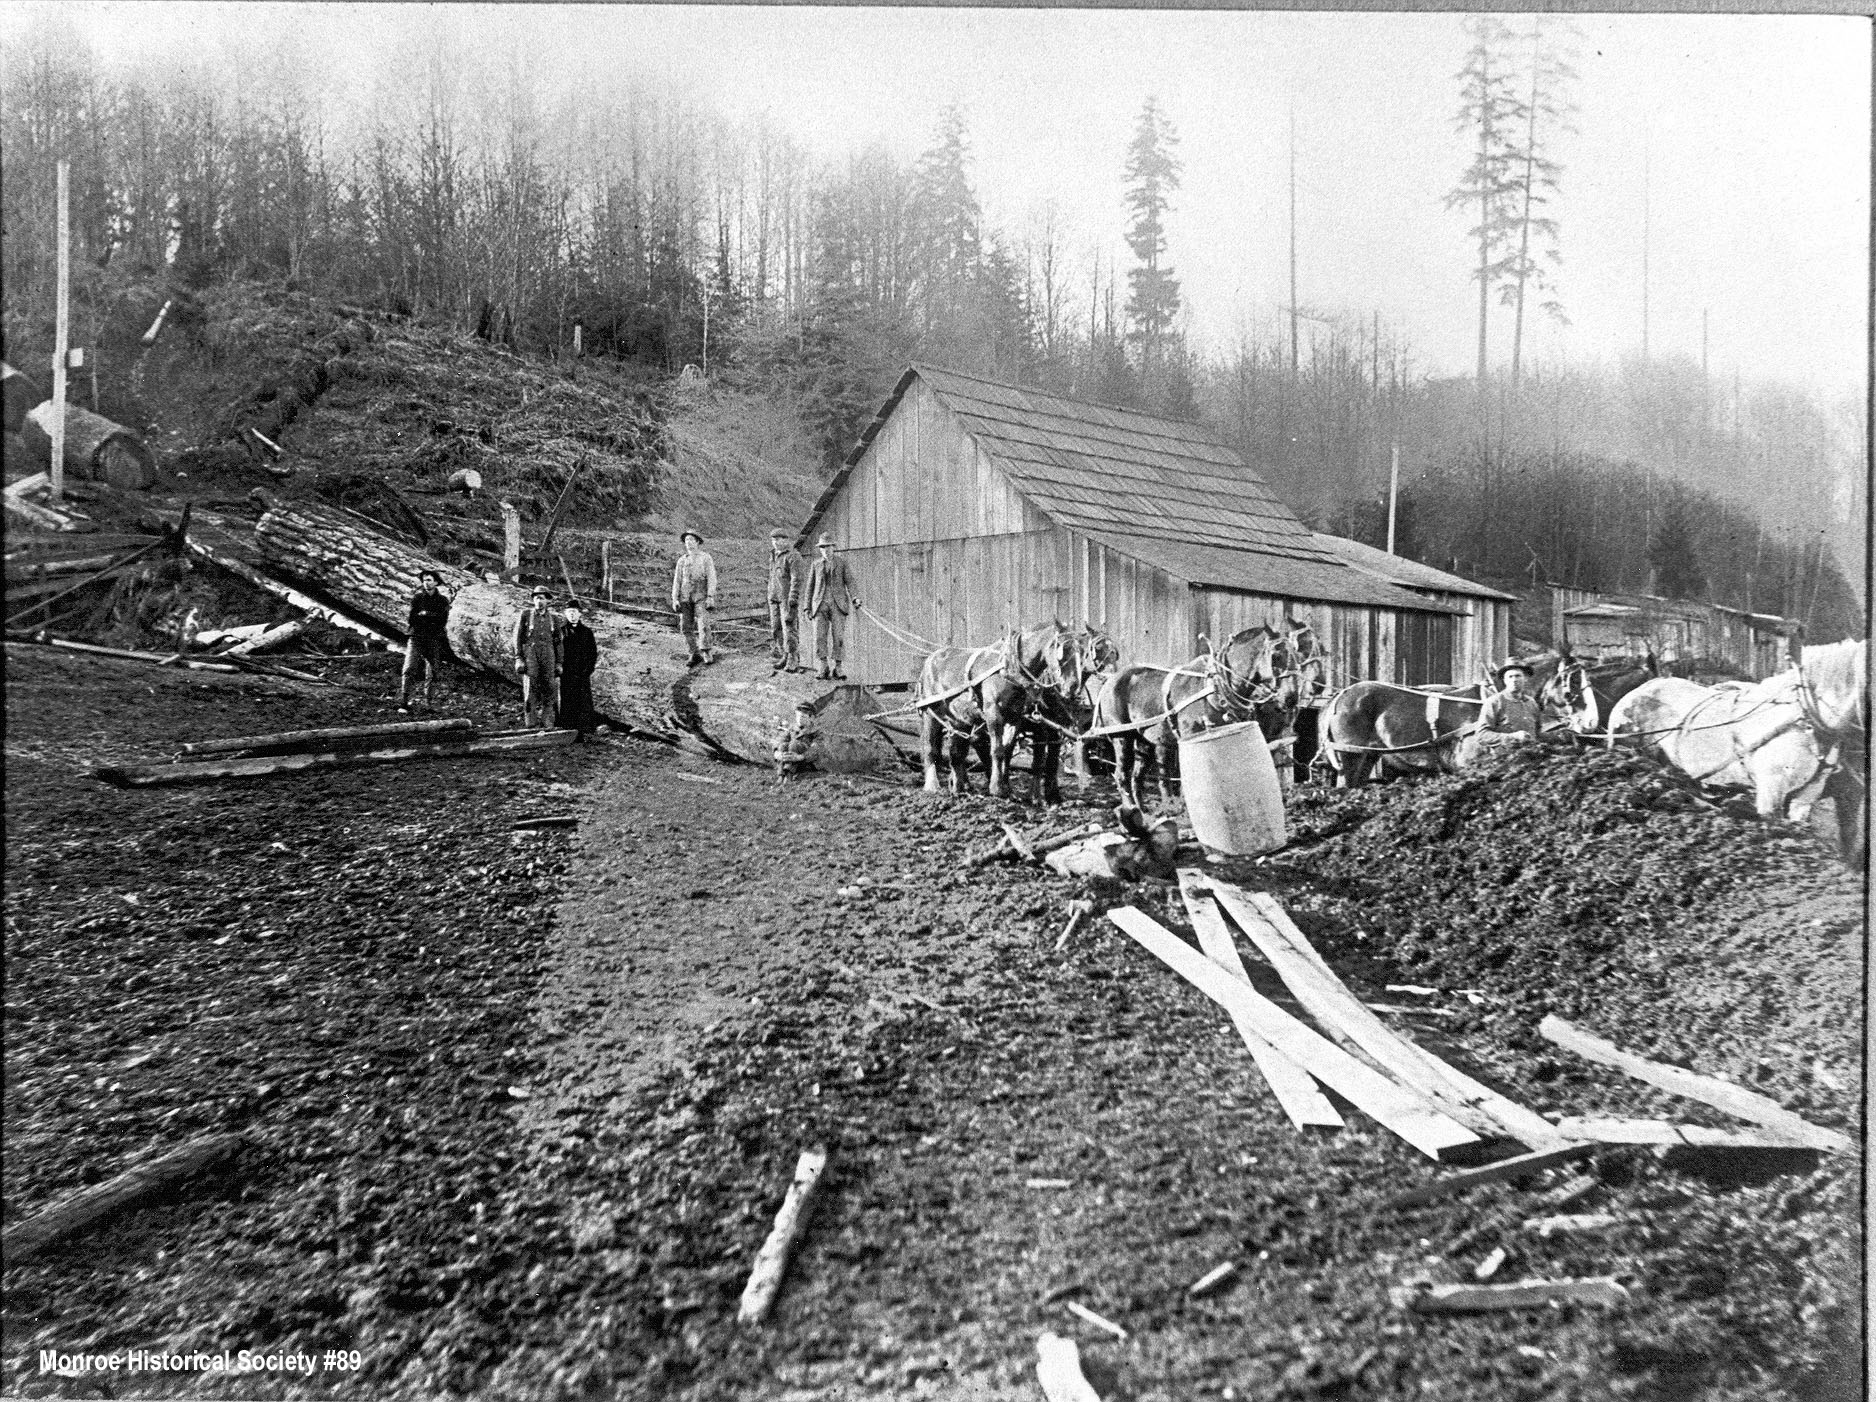 0089 – Jess Smith Logging Camp south of Monroe about 1915 with horse team and skid row